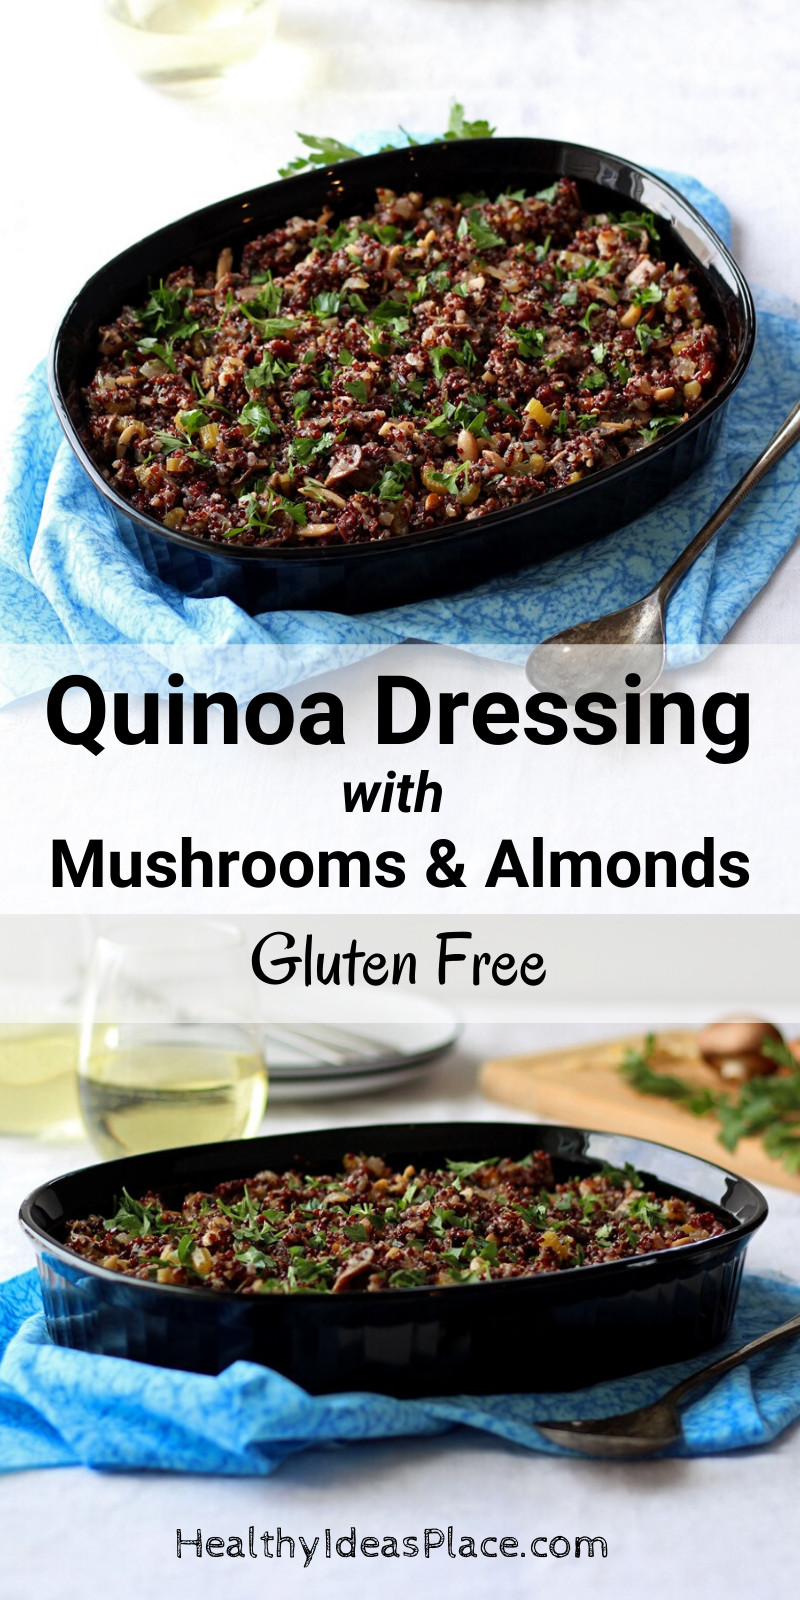 two photos of gluten free dressing in black dish on blue cloth